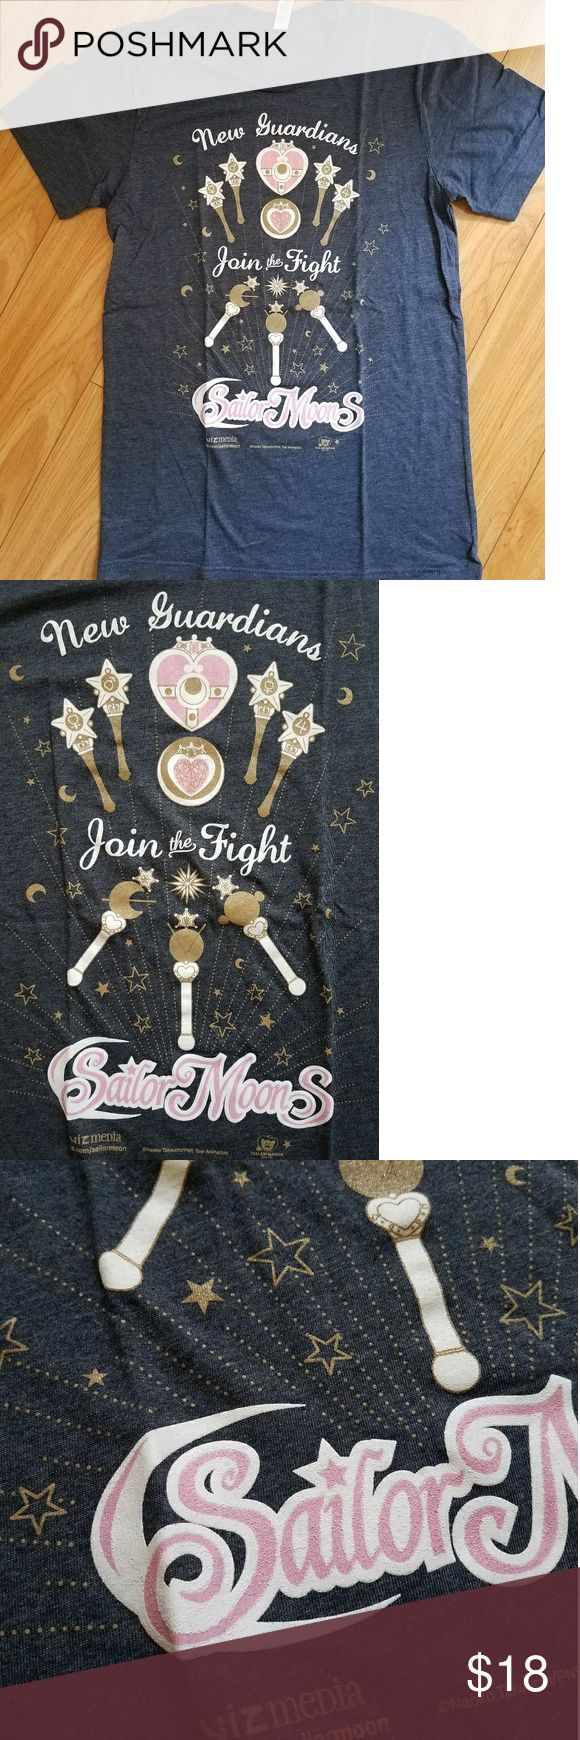 VIZ MEDIA Excusive Sailor Moon Tshirt Denim/navy colored tshirt with metallic details. Size small. Soft quality. Wands from inner and outer scouts. Worn once. Very nostalgic 💖 Viz Media Tops Tees - Short Sleeve